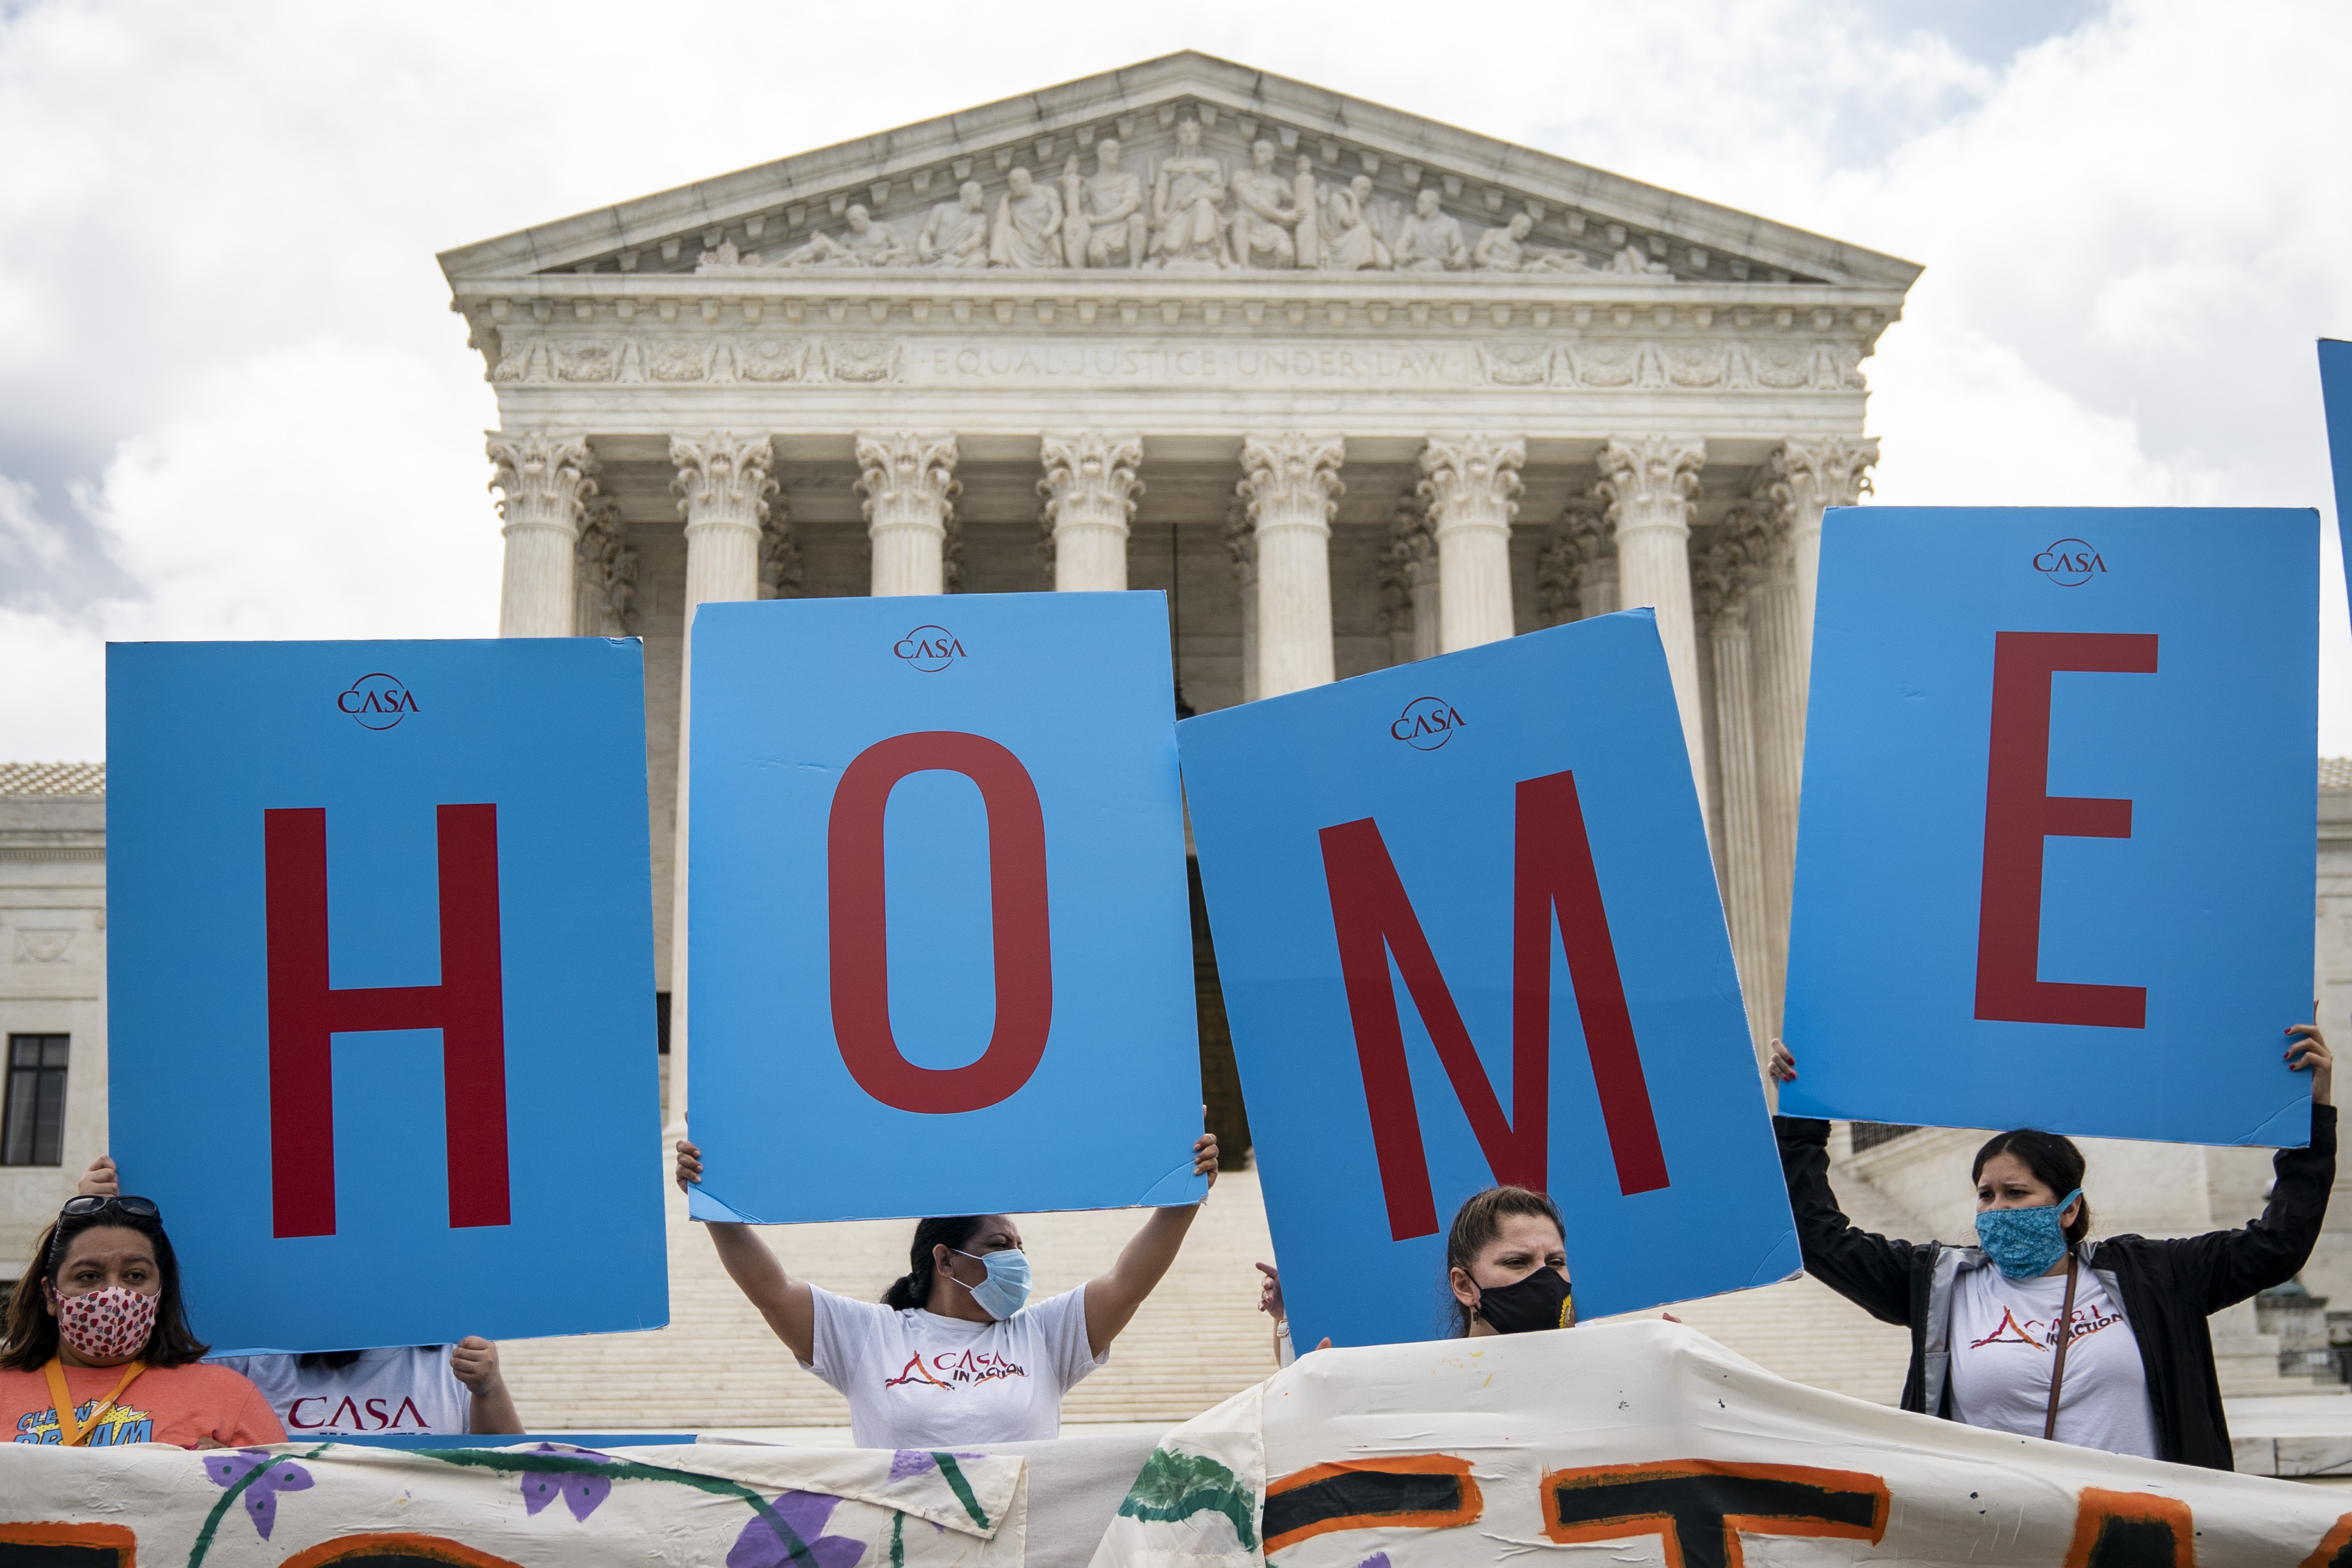 DACA recipients and their supporters rally outside the US Supreme Court on June 18, 2020 in Washington, DC. A group of individuals are holding large signs that spell home.